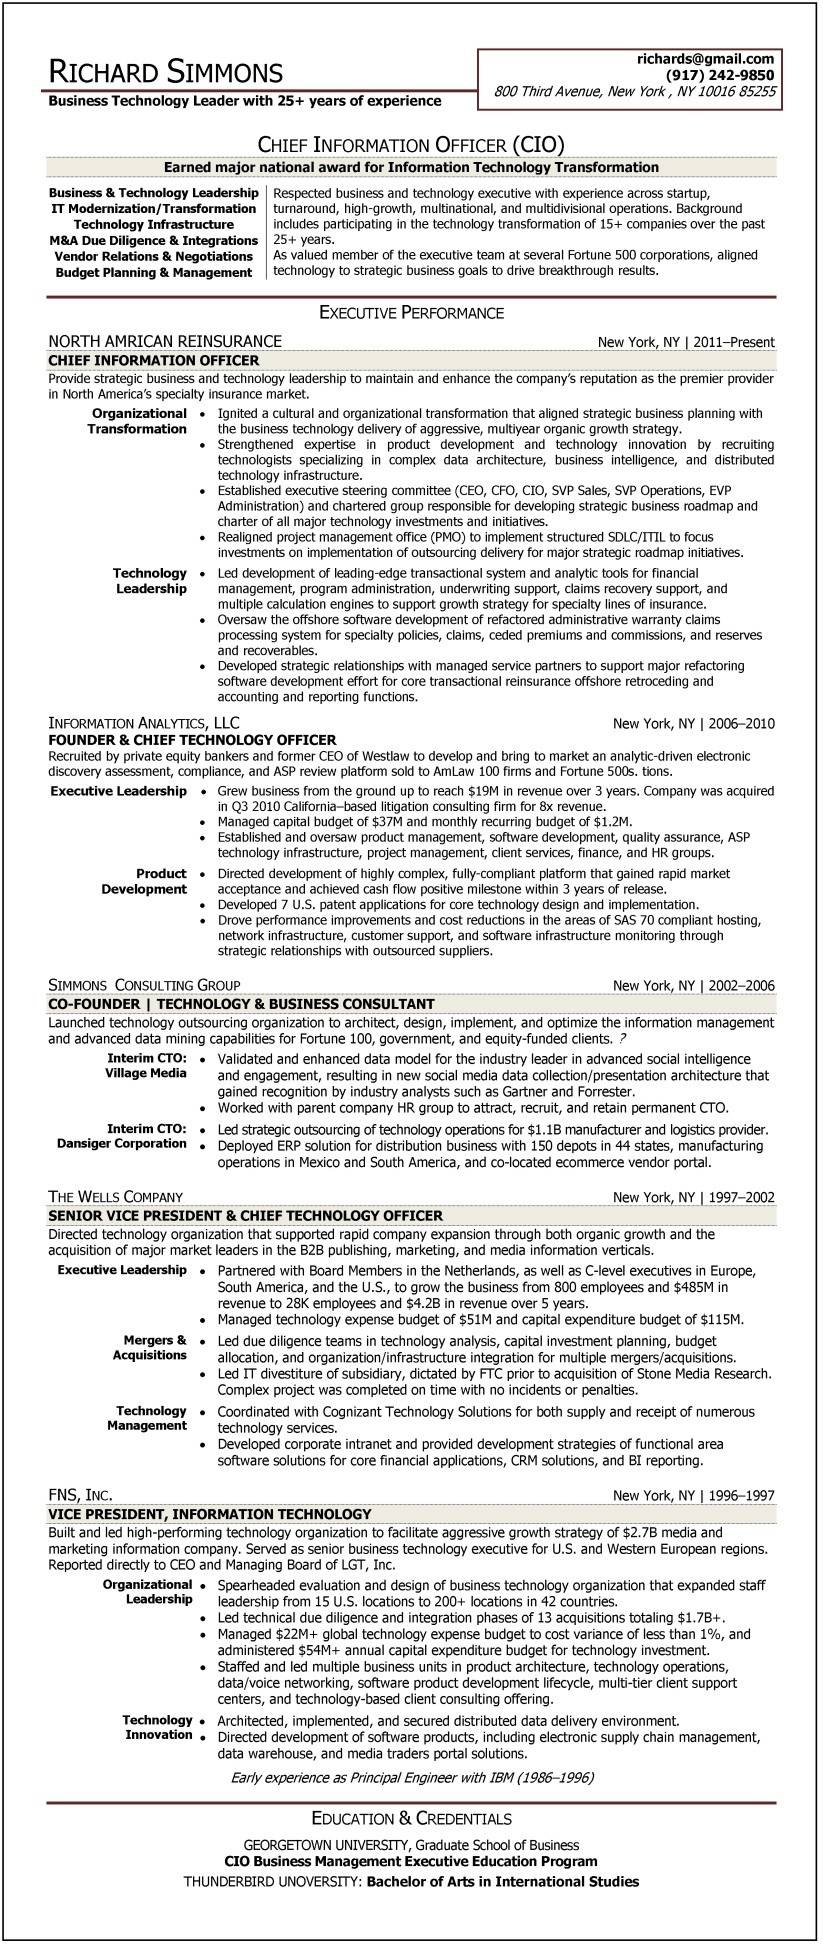 Sample Résumé: Chief Information Officer | Certified Resume Writer